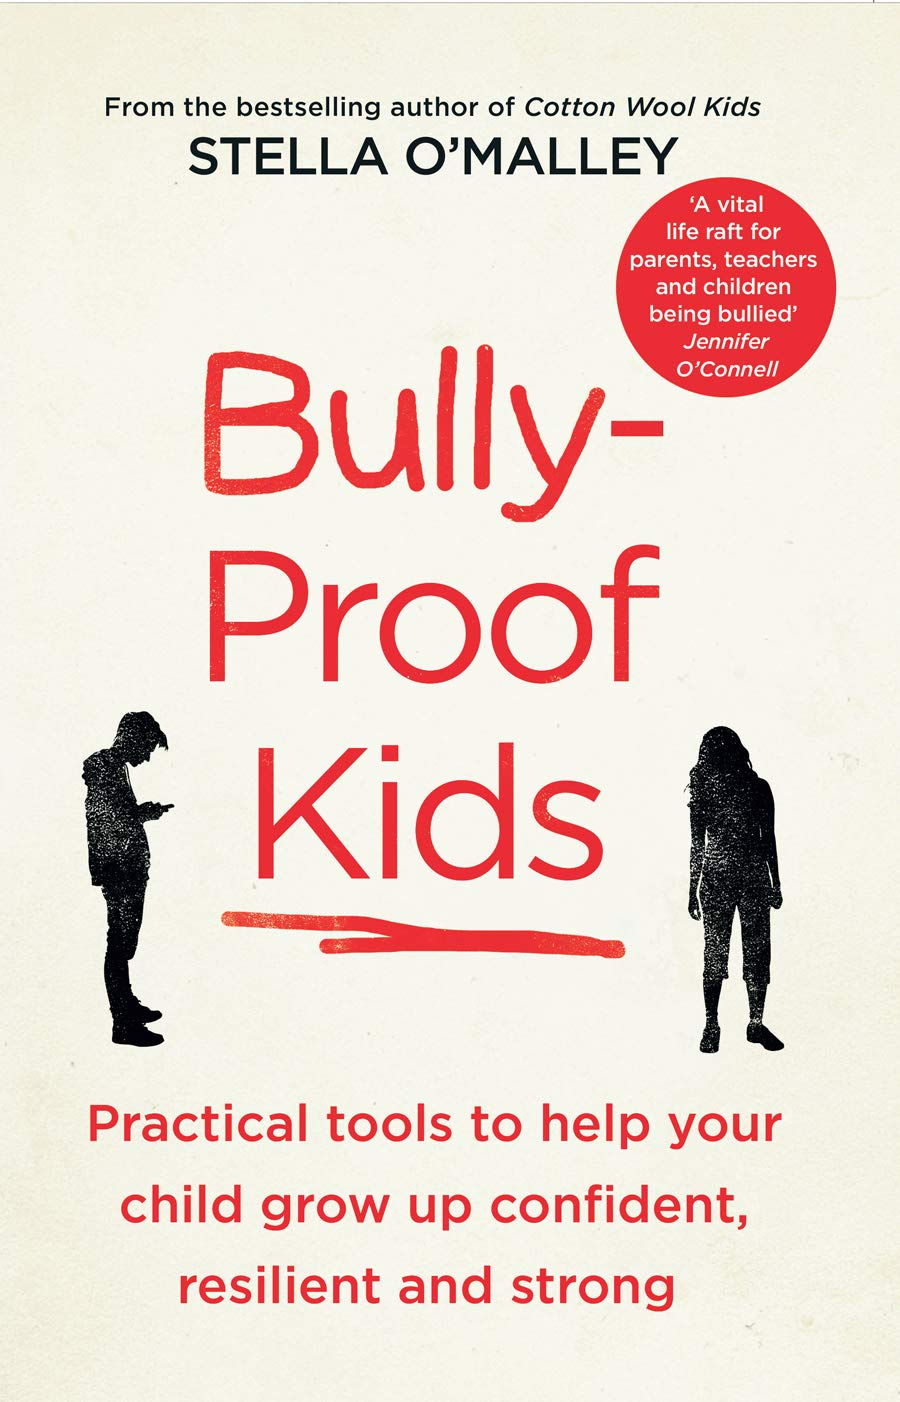 Bully-Proof Kids: Practical Tools to Help Your Child to Grow